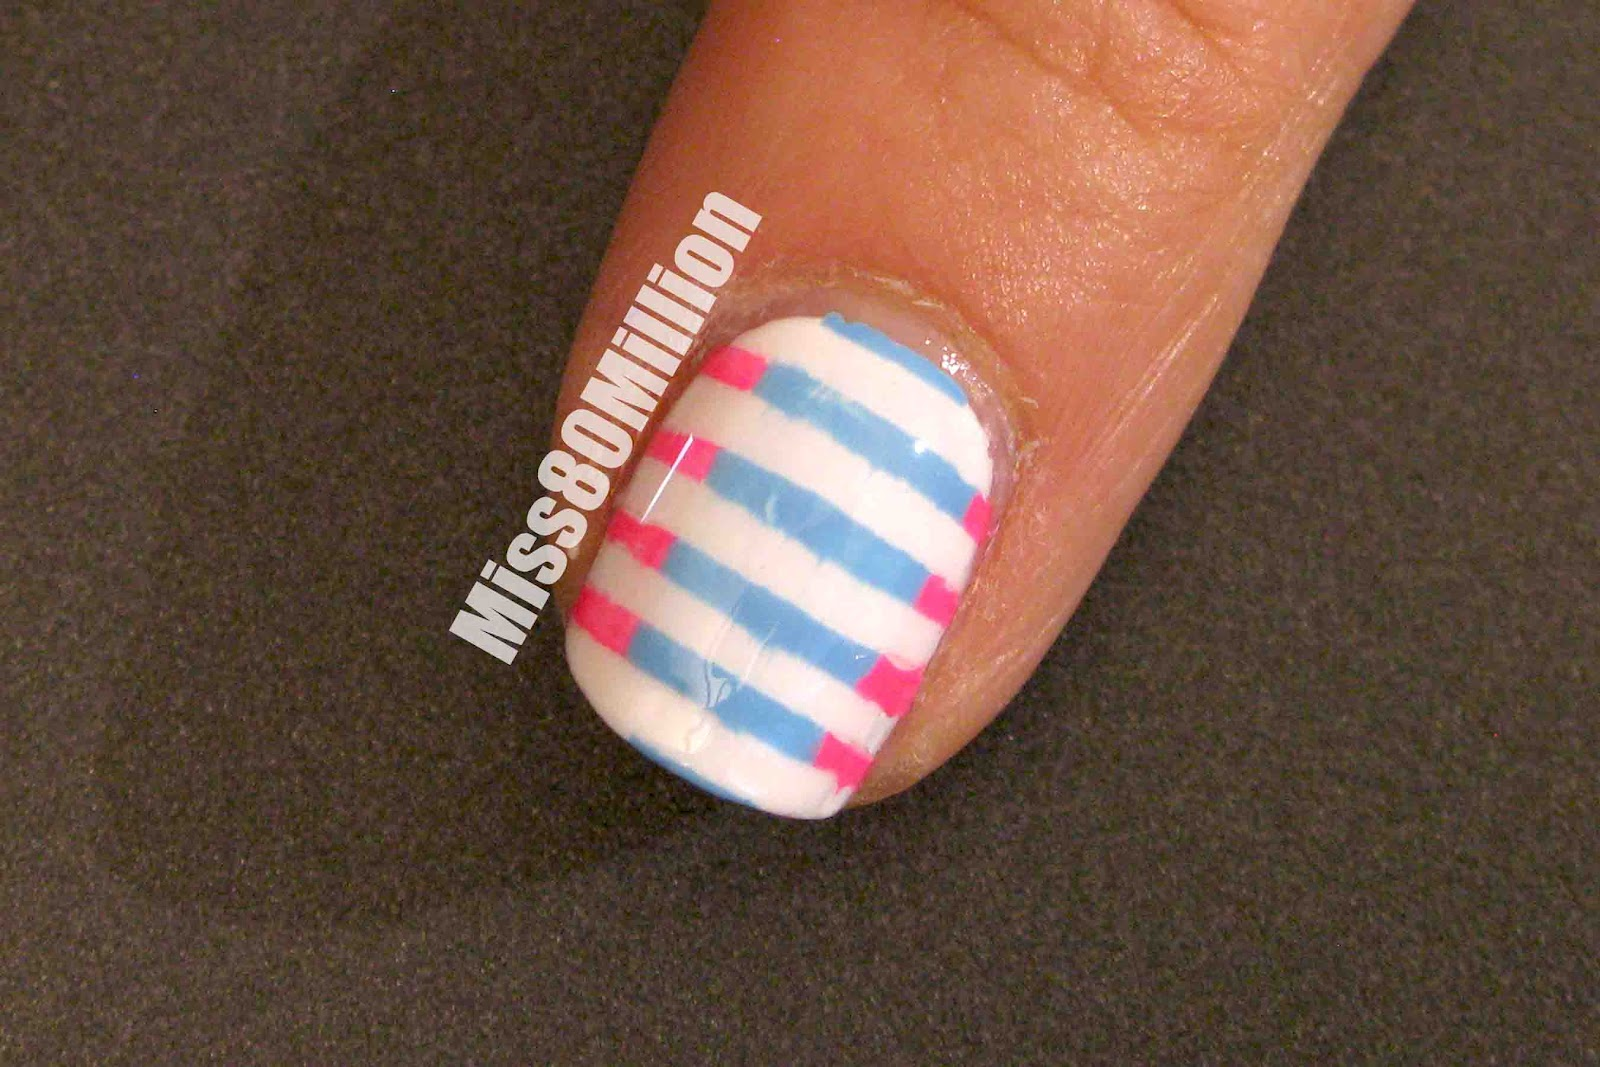 Blue and Pink Nail Designs | Best Nail Design & ART 2015